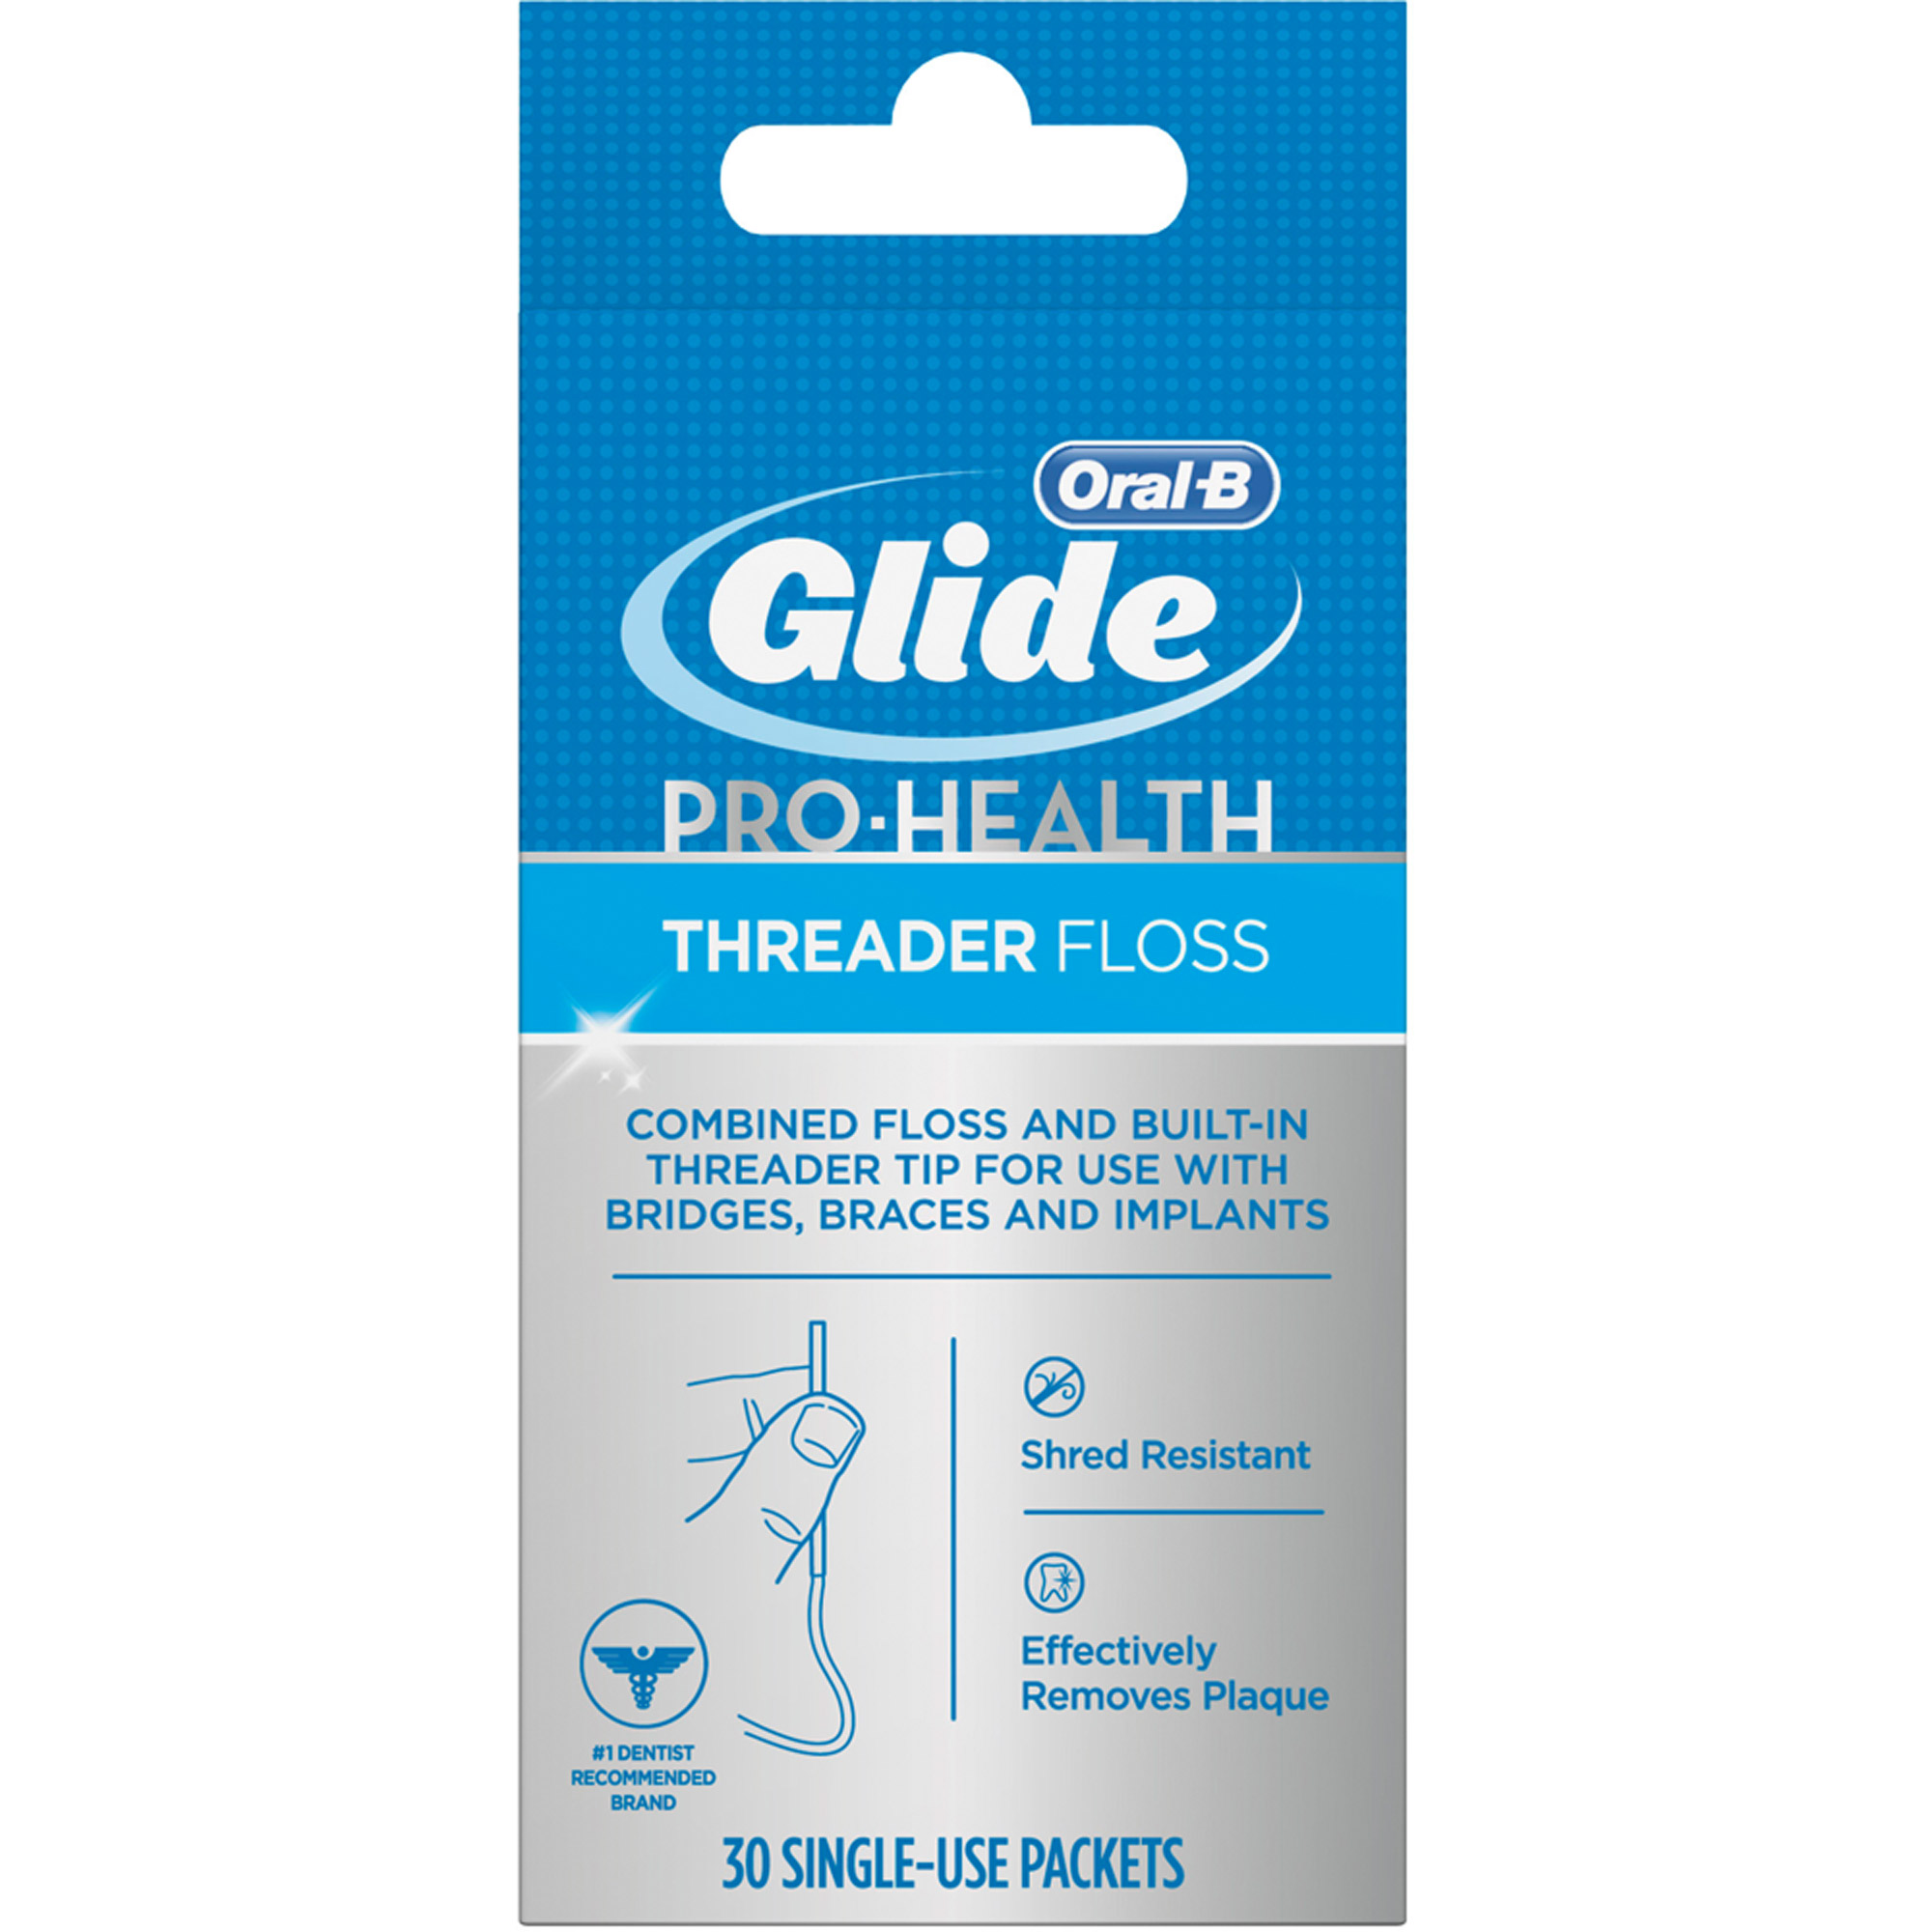 Oral-B Glide Pro-Health Threader Floss, 30 count